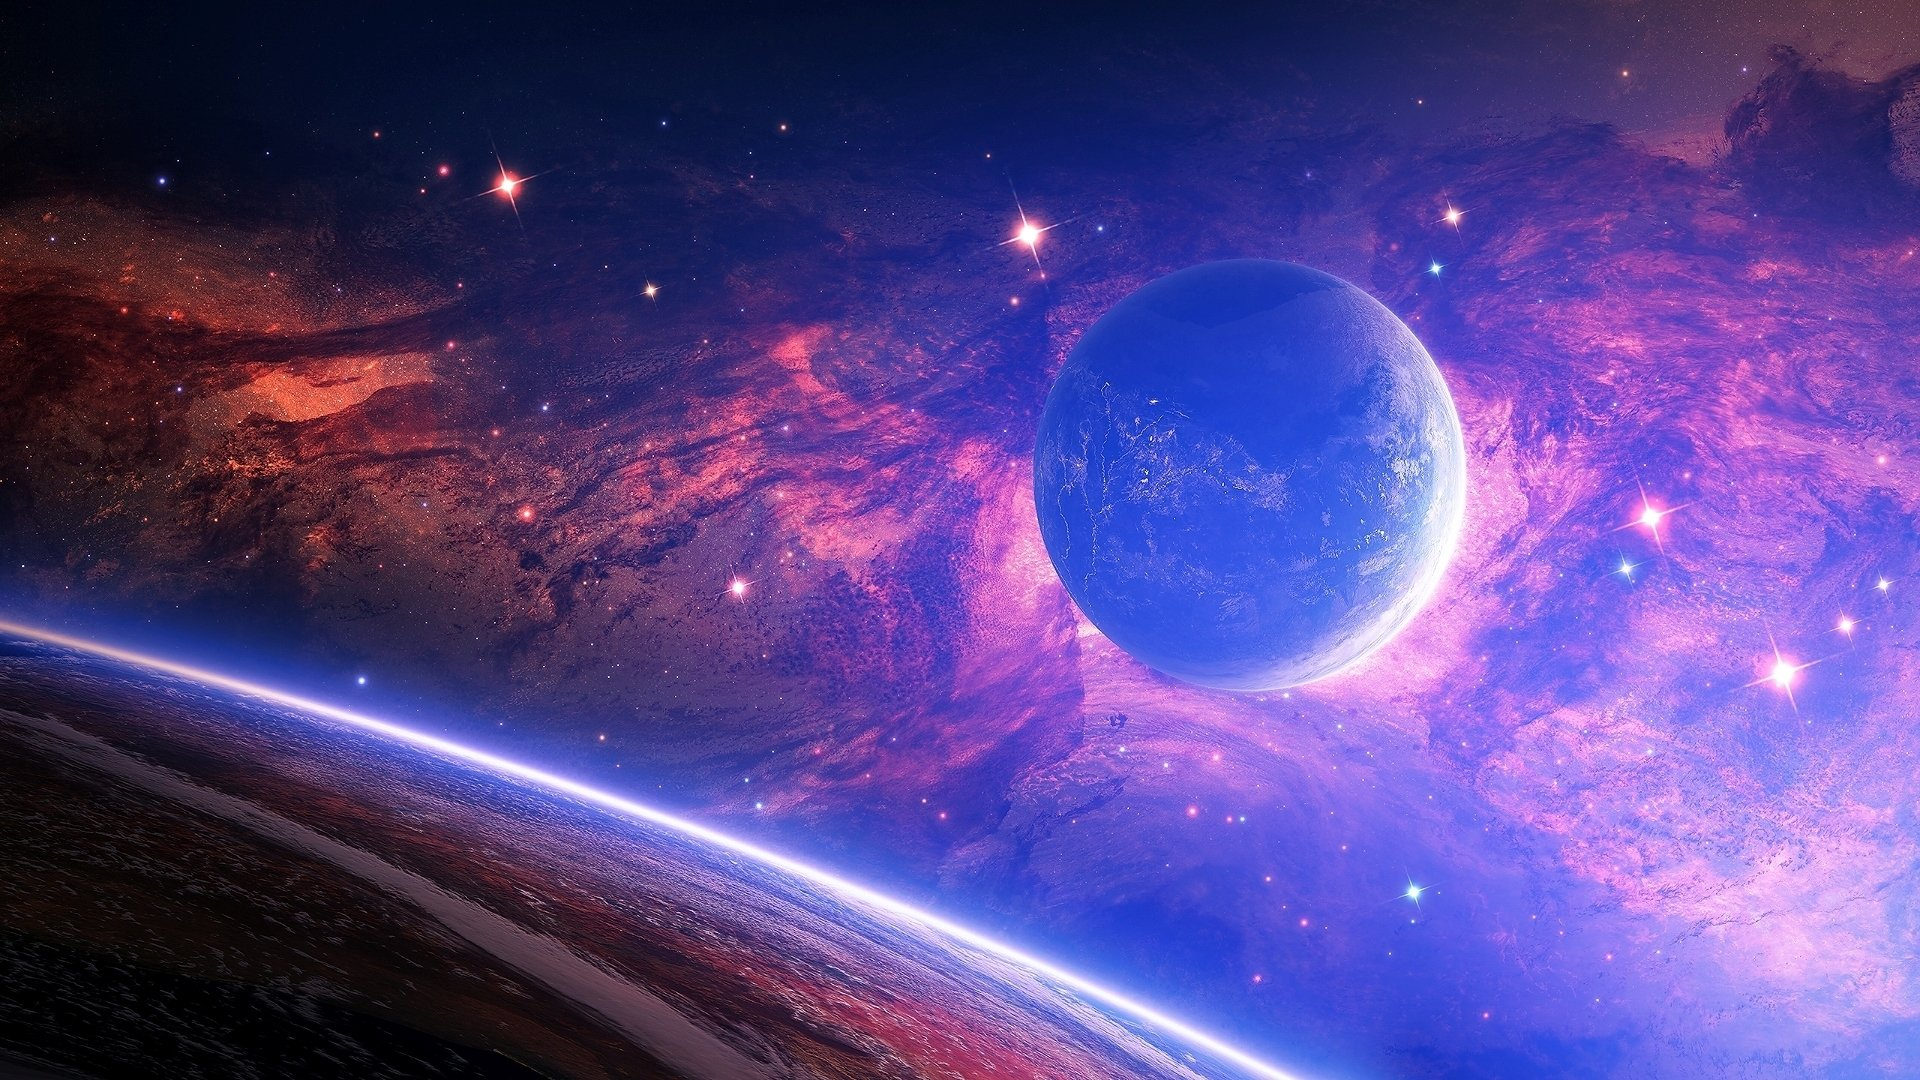 Sci Fi - Planets  Space Galaxy Wallpaper